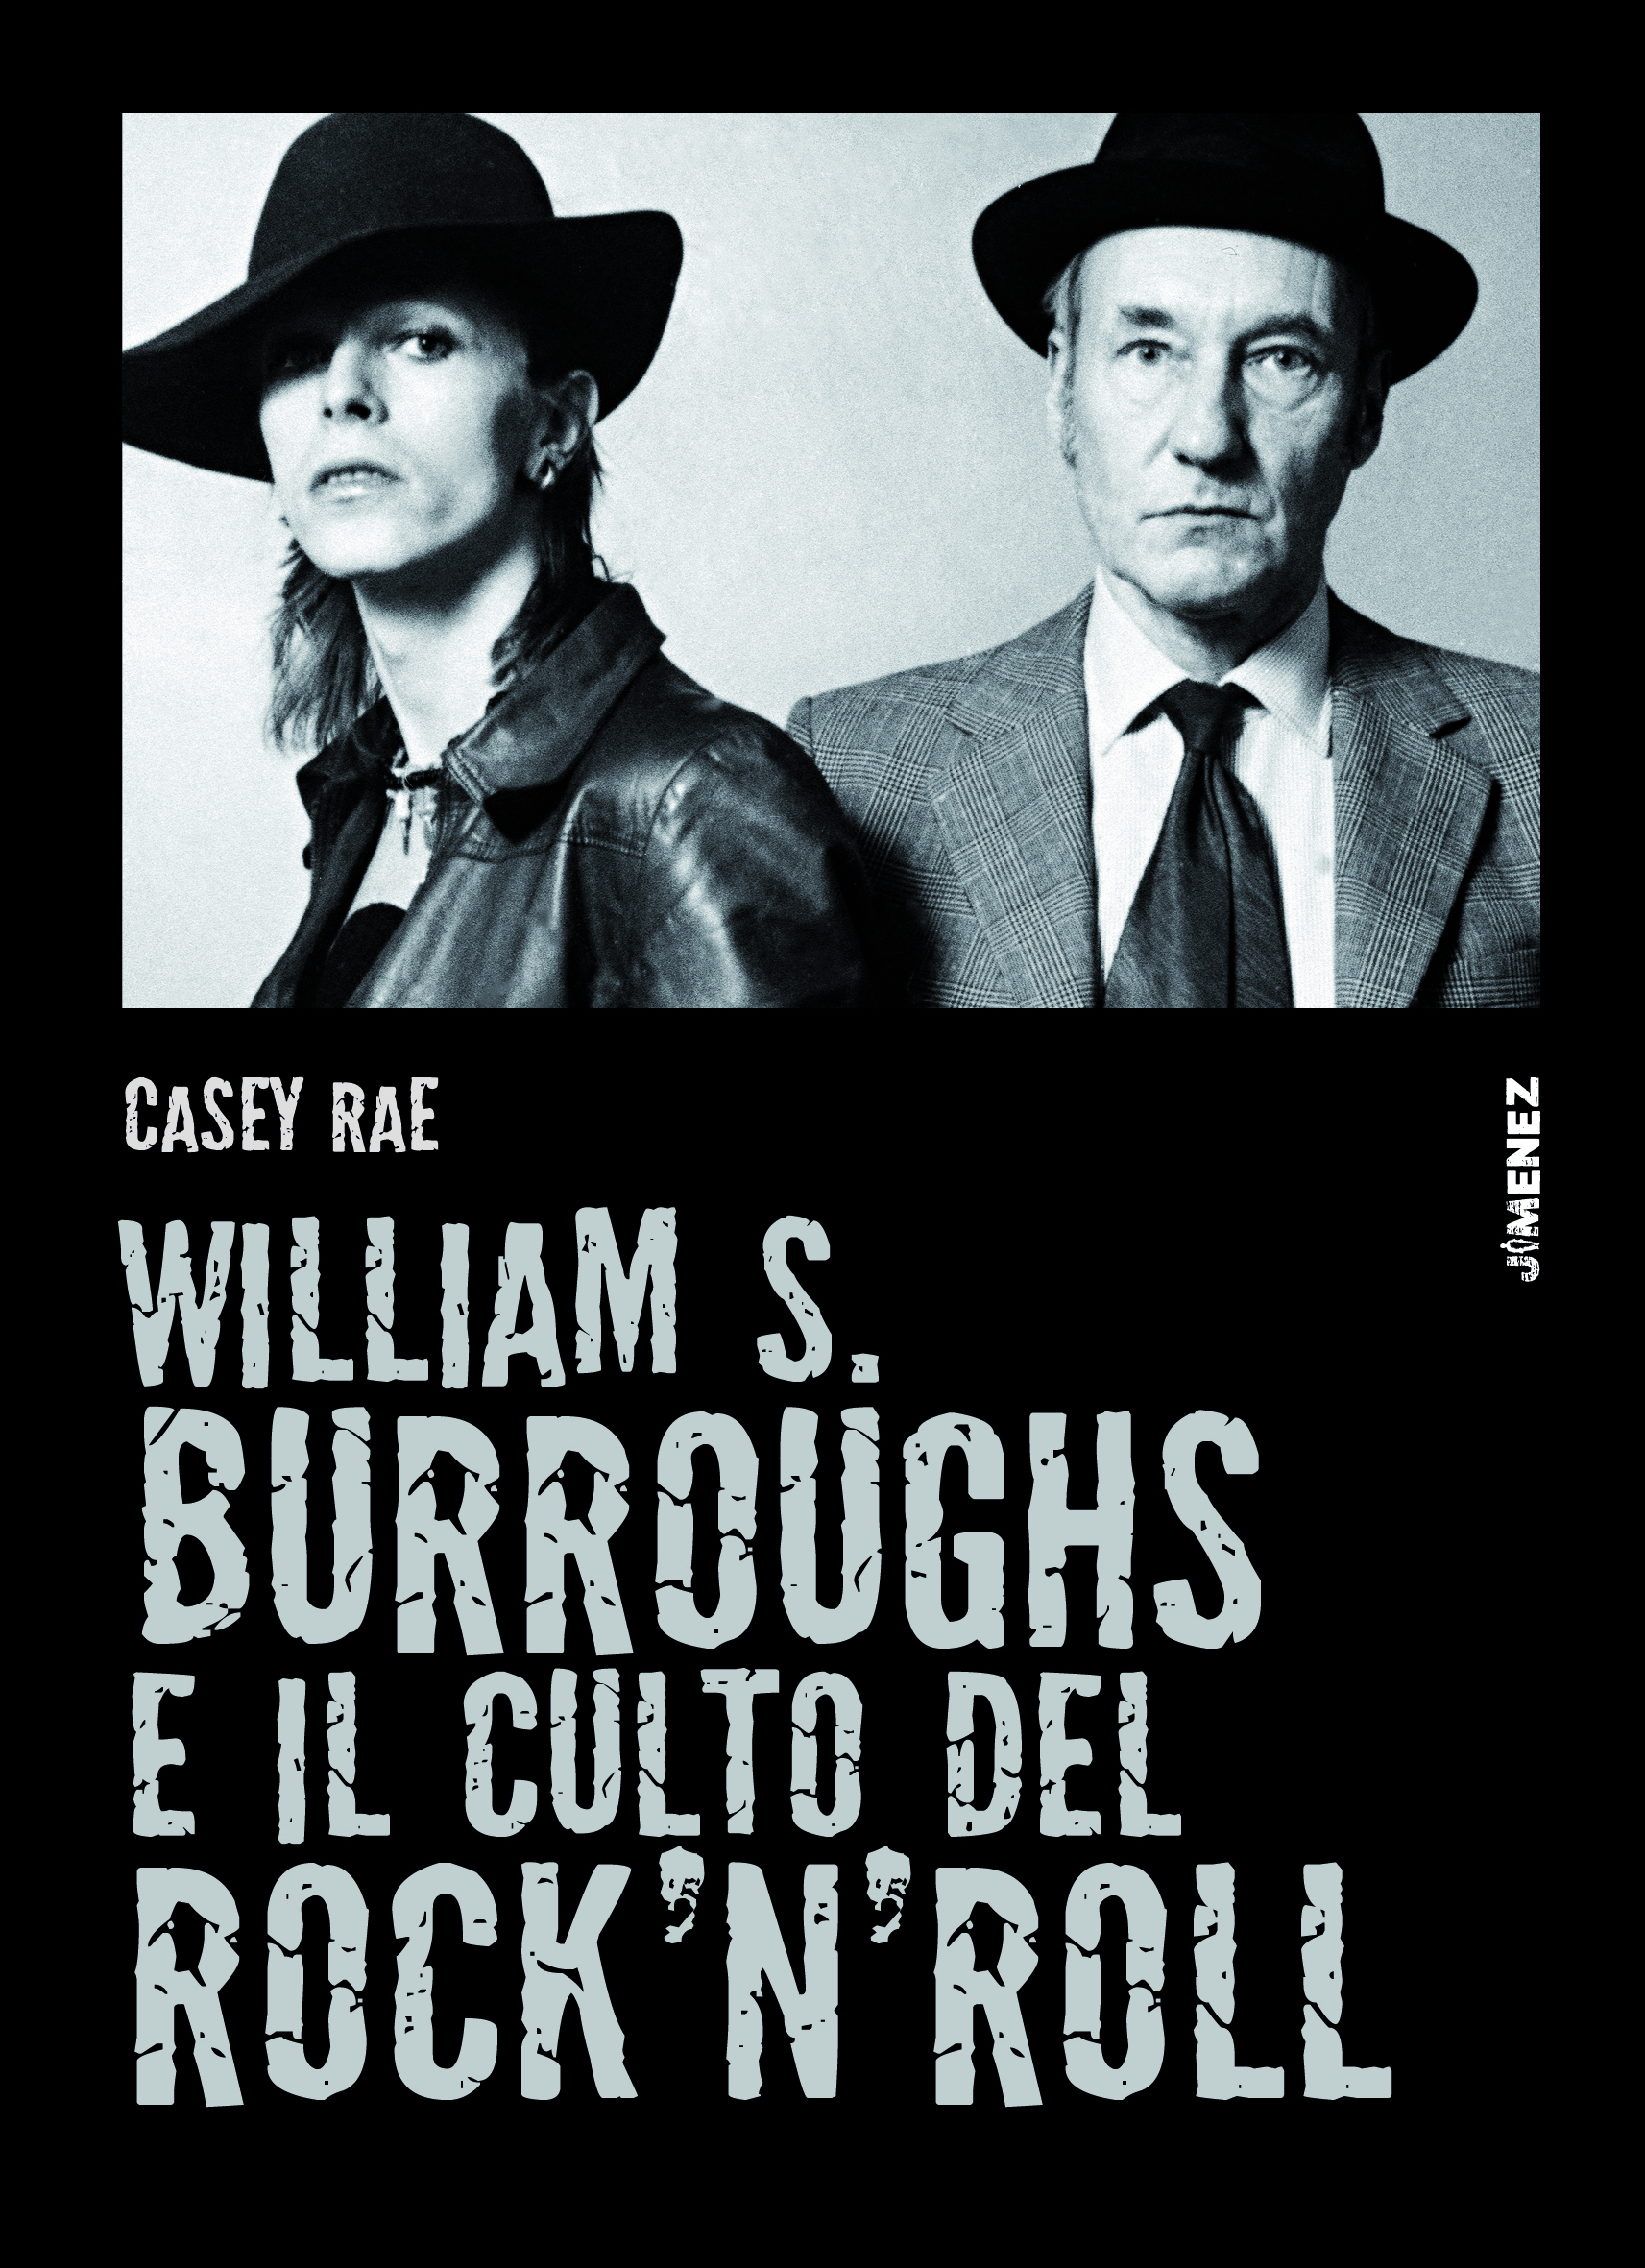 William S Burroughs e il culto del rocknroll